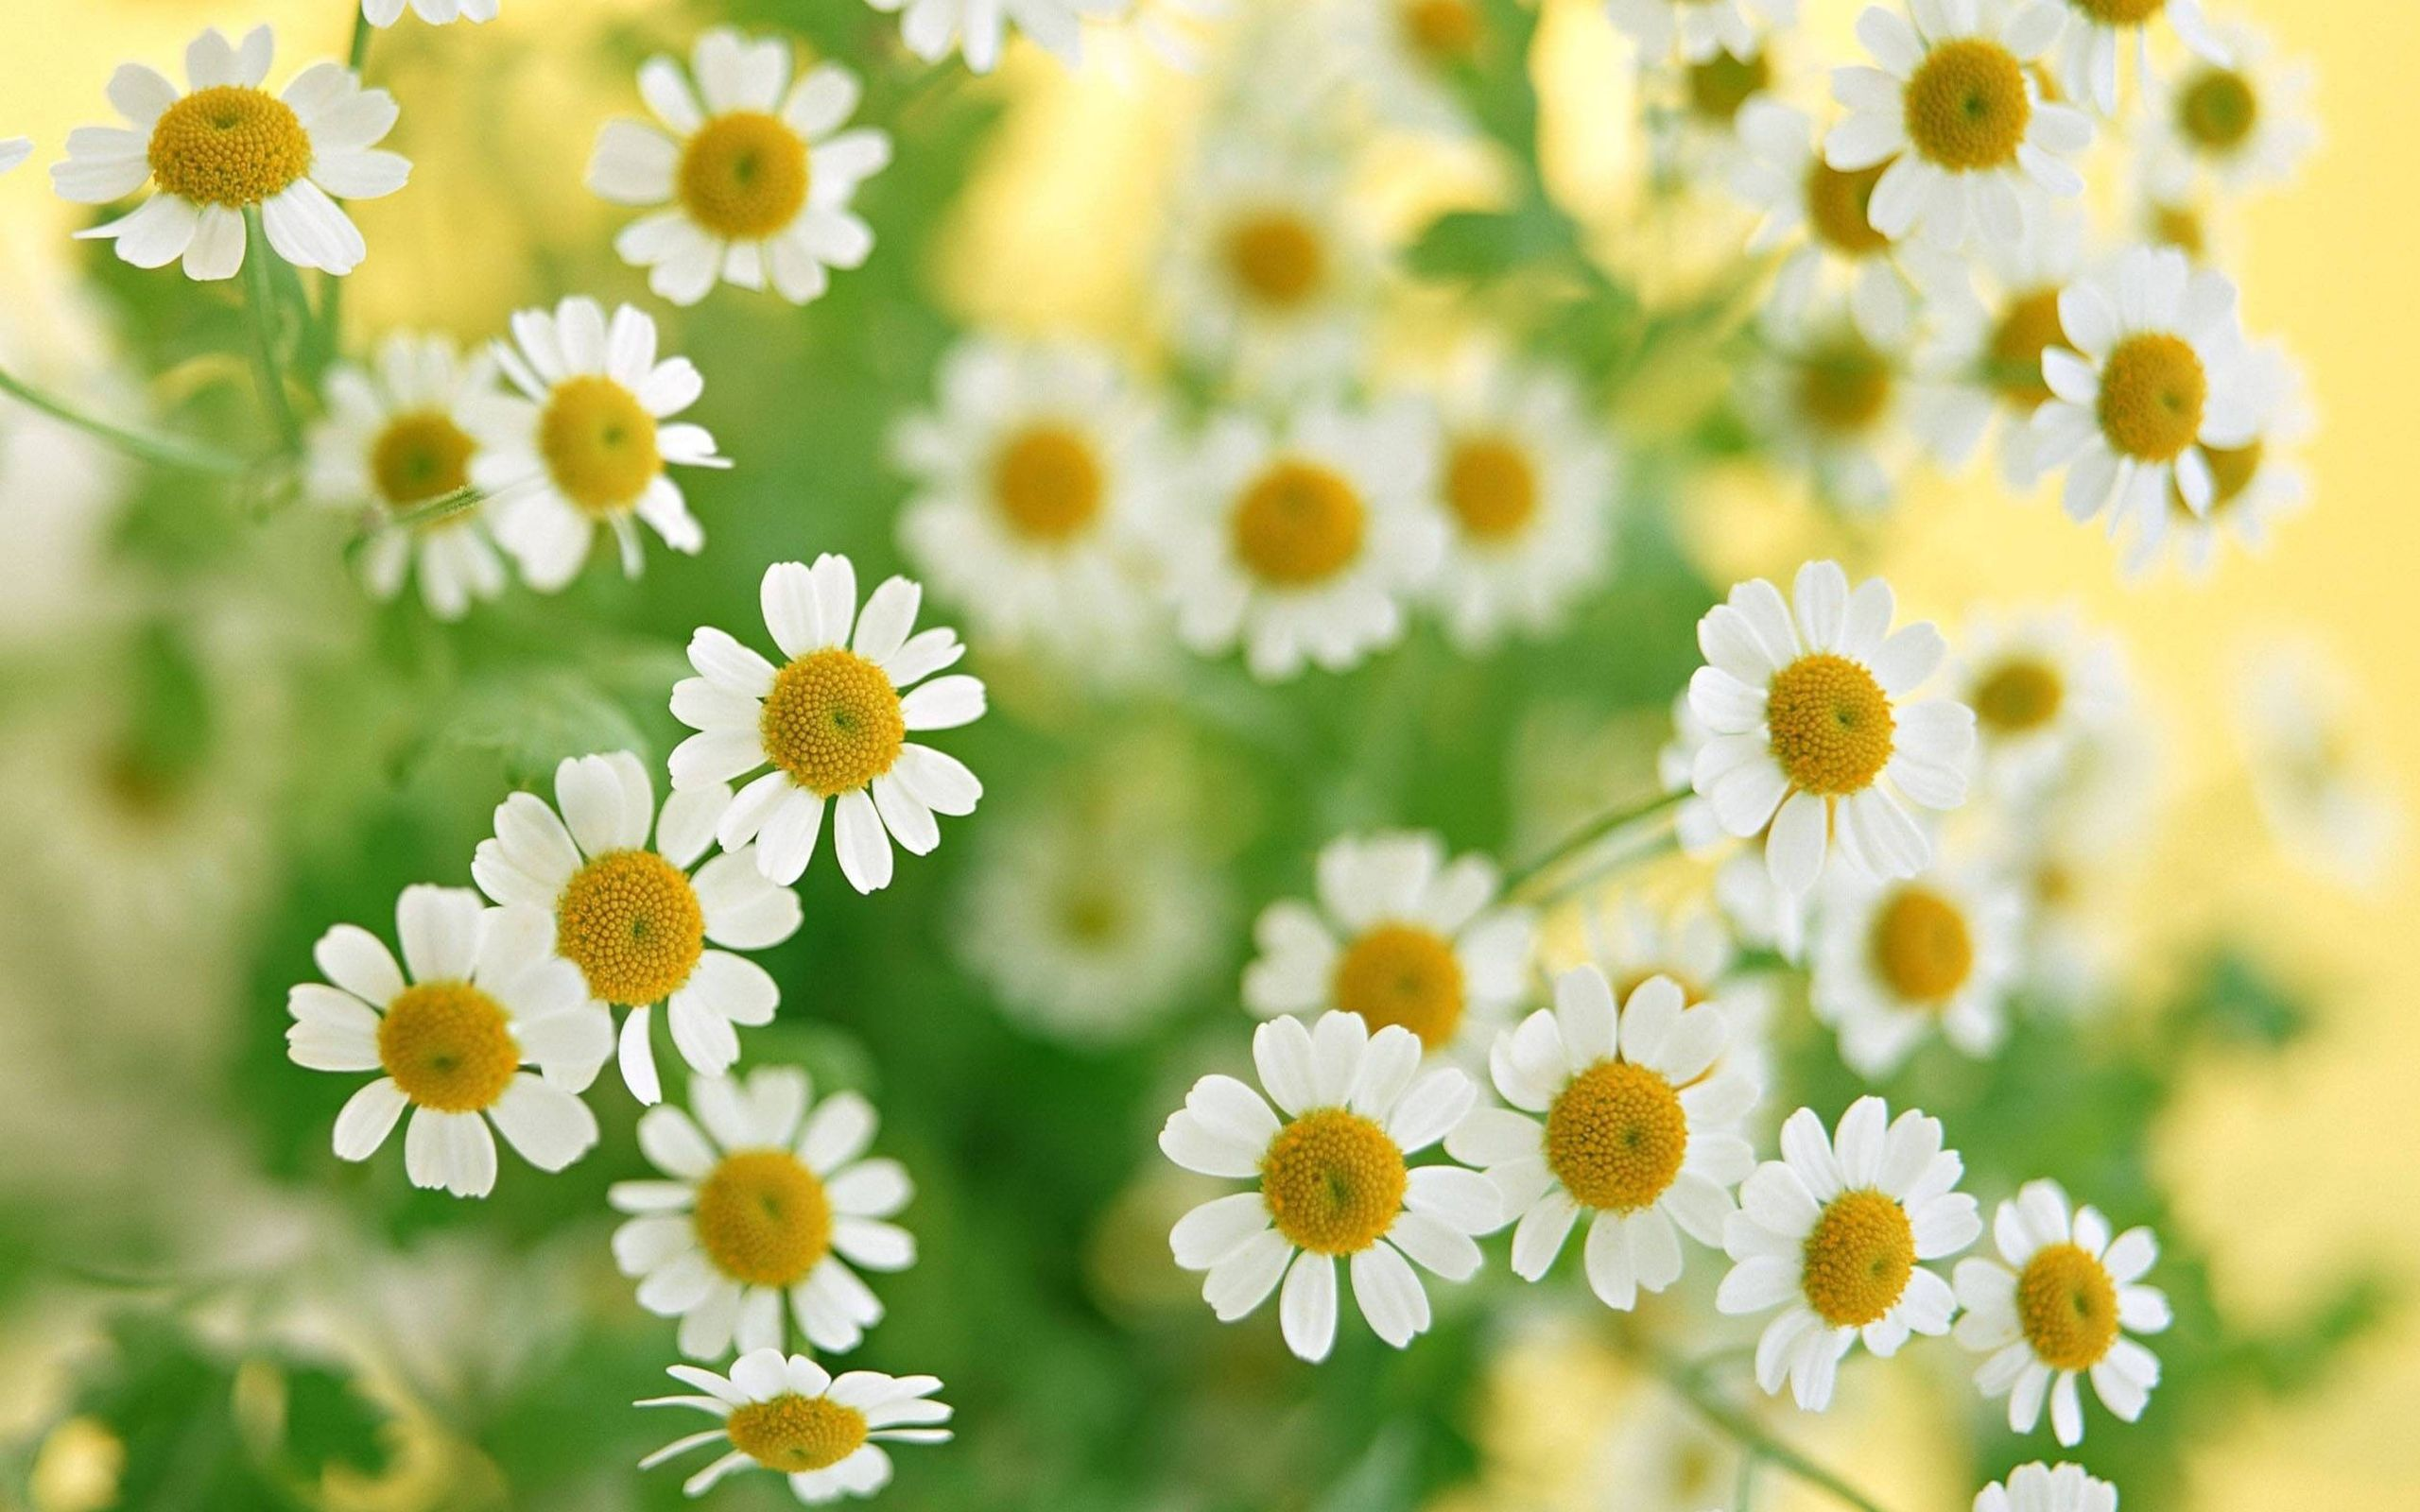 White tag wallpapers black nature flower shines beatiful white photos galleries chamomile white flowers wallpaper uploaded by priya sharma mightylinksfo Image collections